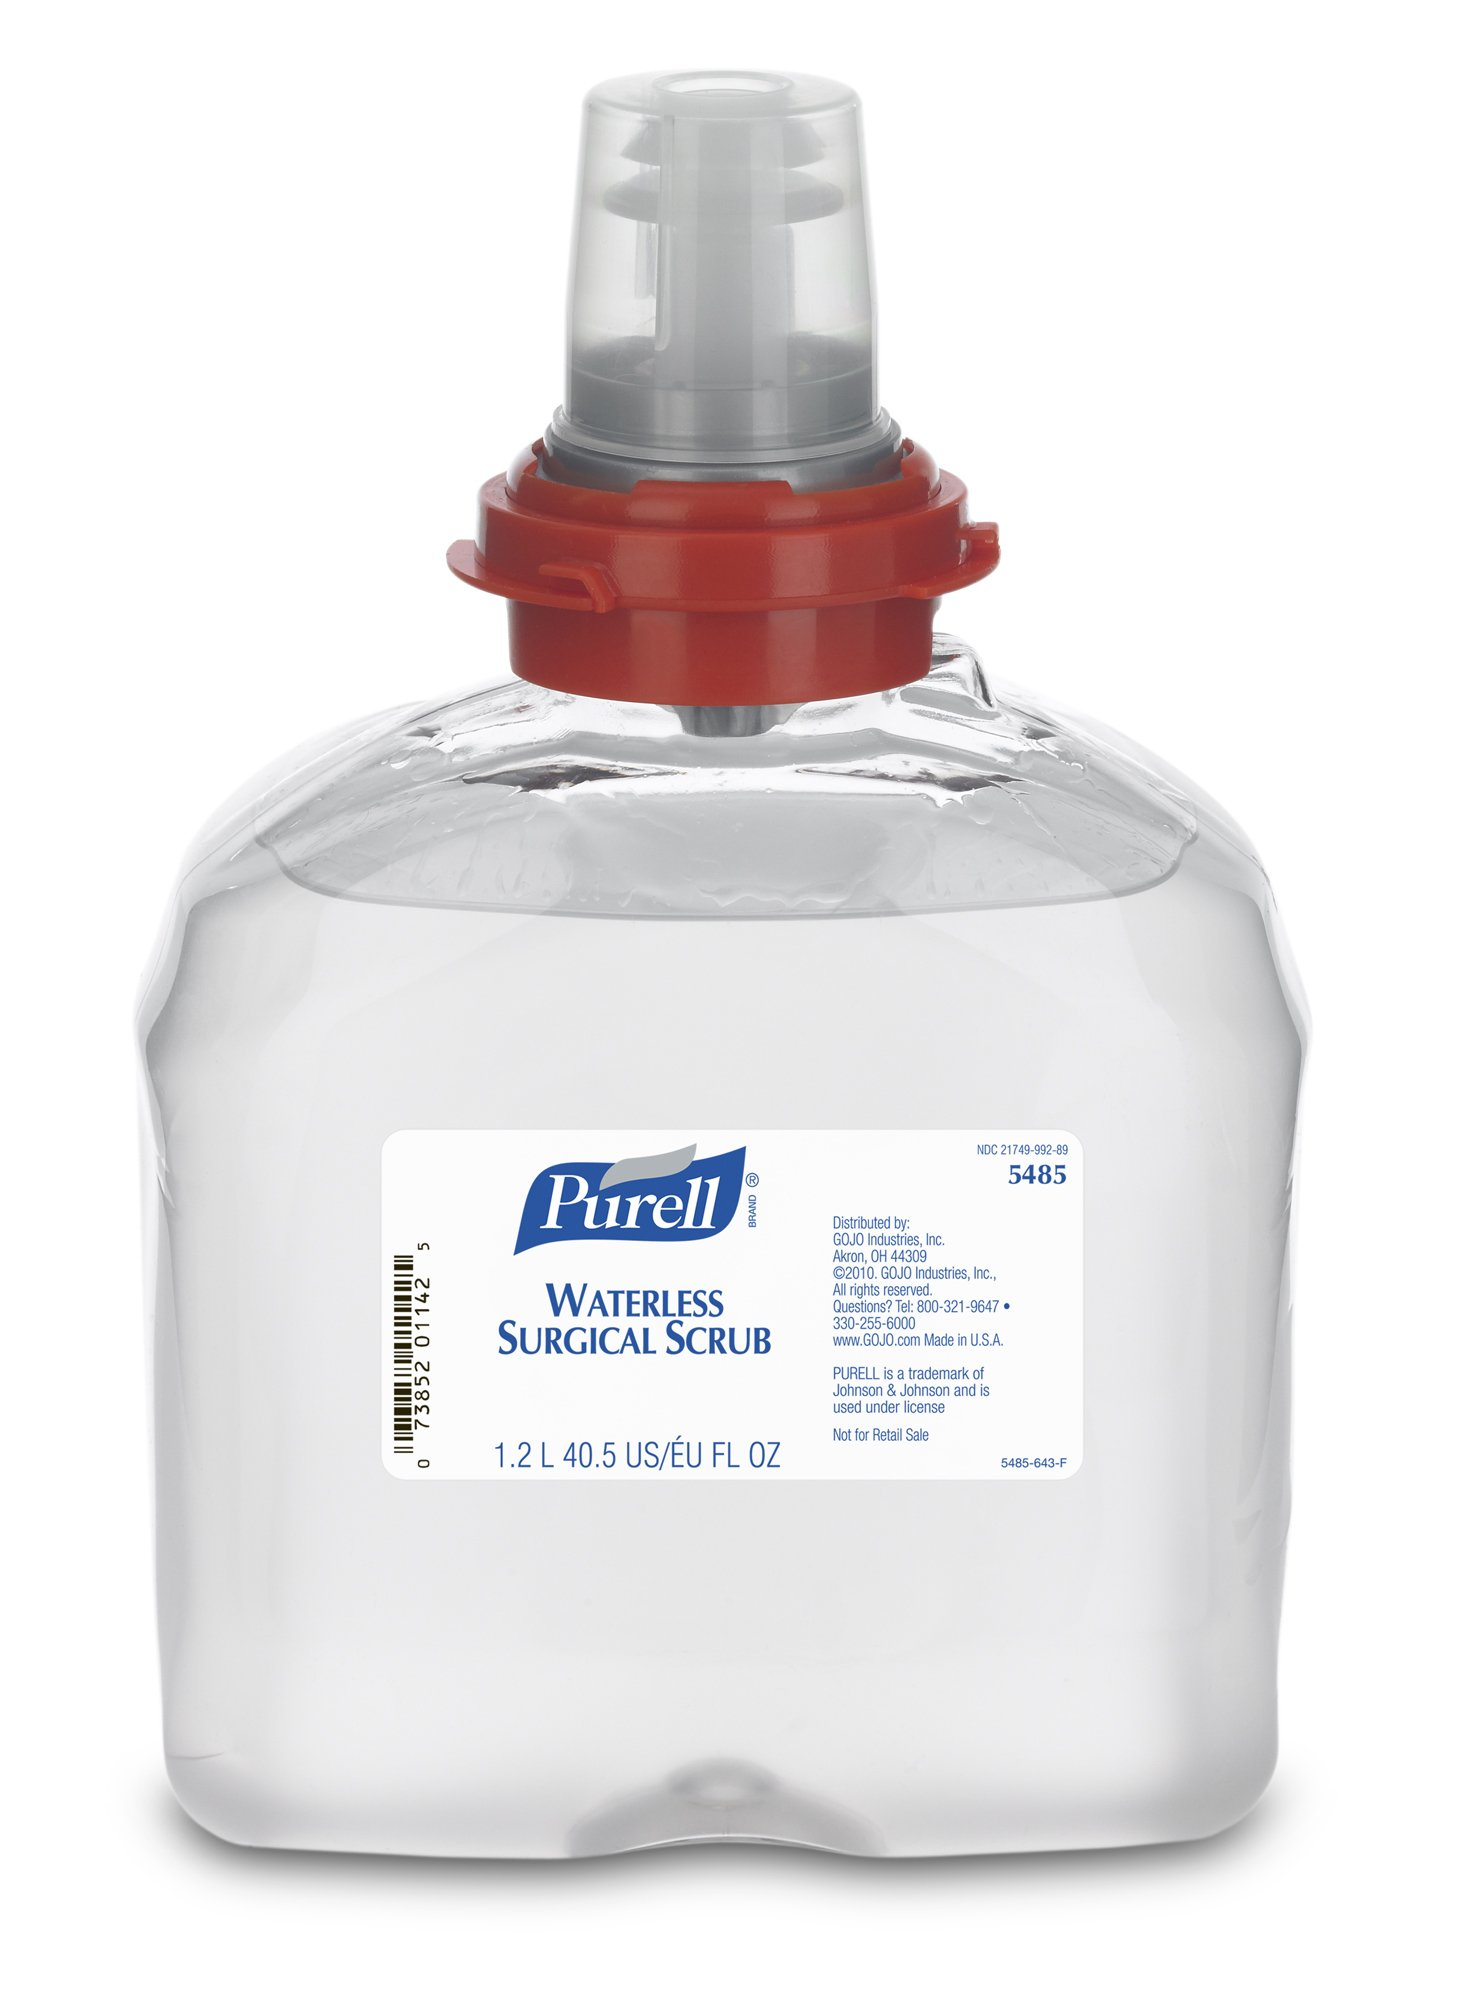 Purell TFX Refill, 5485-04 - Waterless Surgical Scrub (1200 mL) - 4 Pack